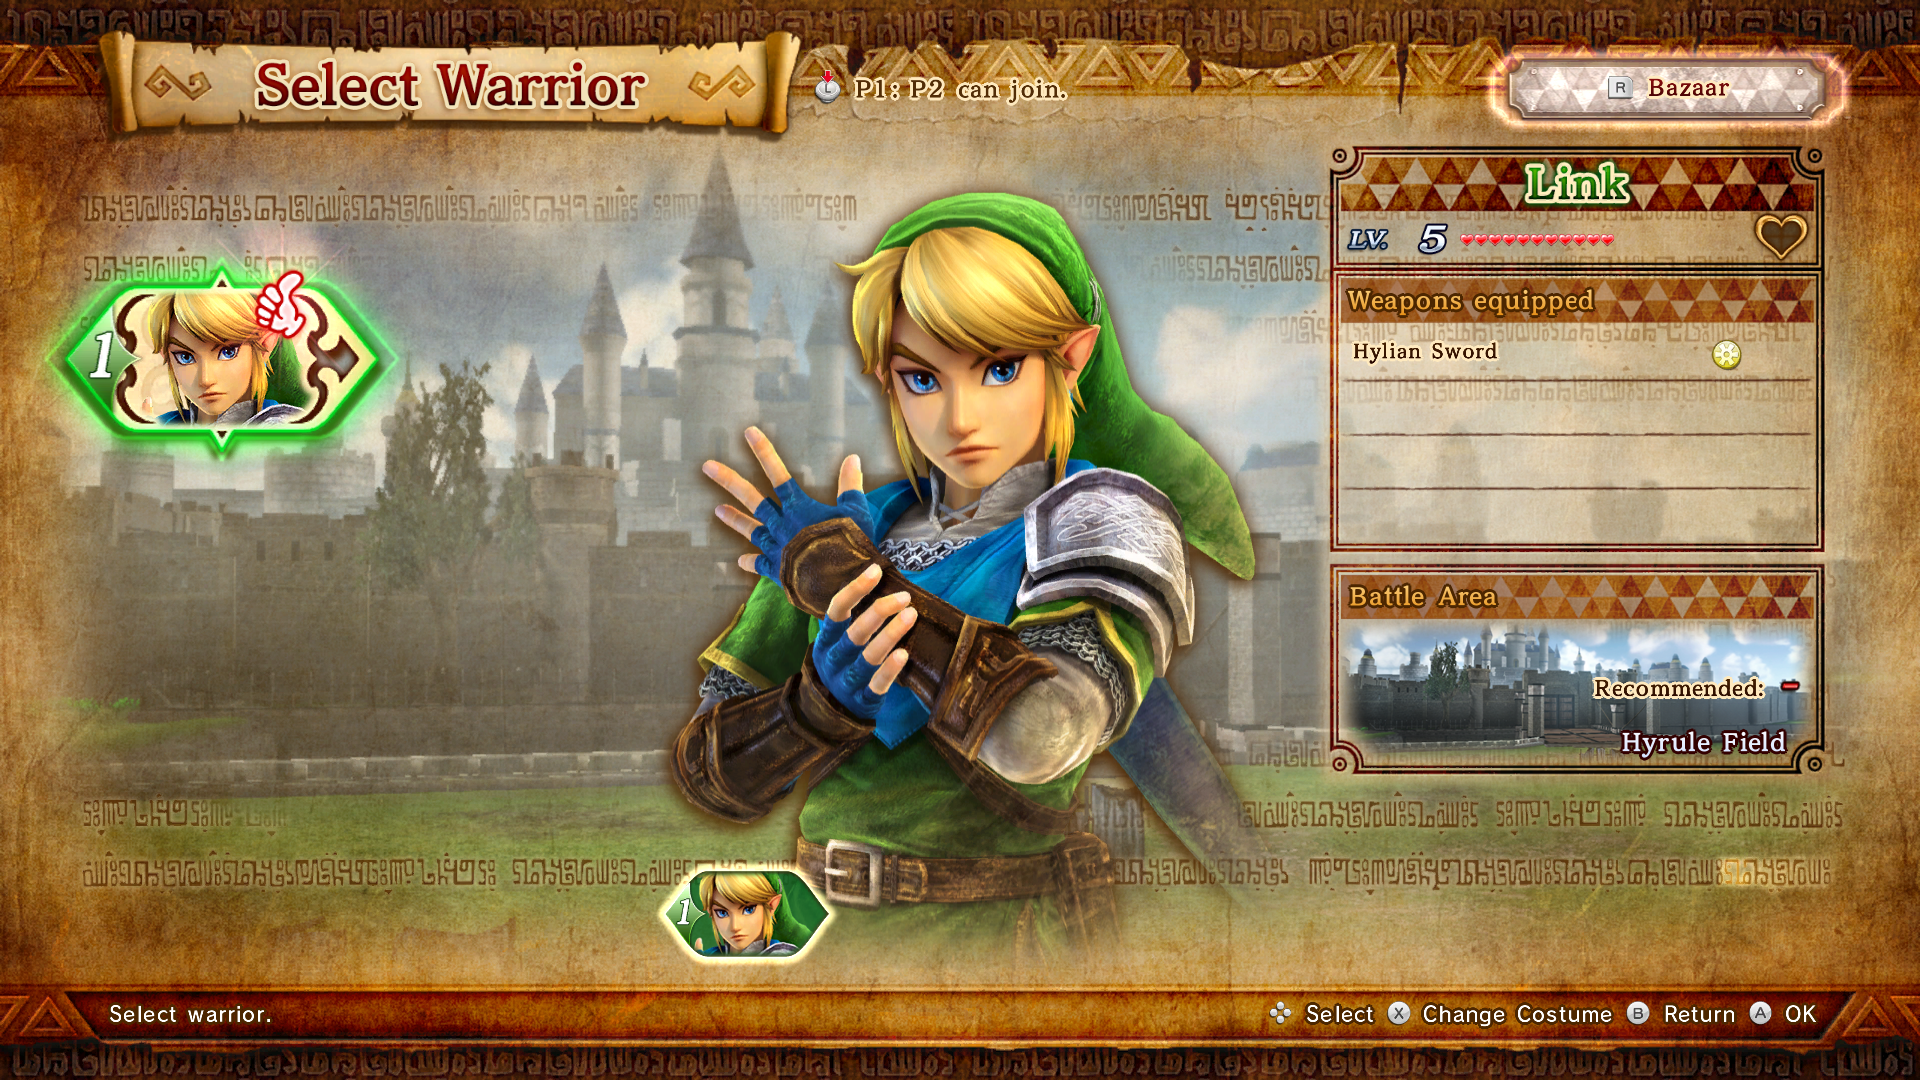 Hyrule Warriors Definitive Edition Controller 2 Not Recognized Issue 3989 Yuzu Emu Yuzu Github